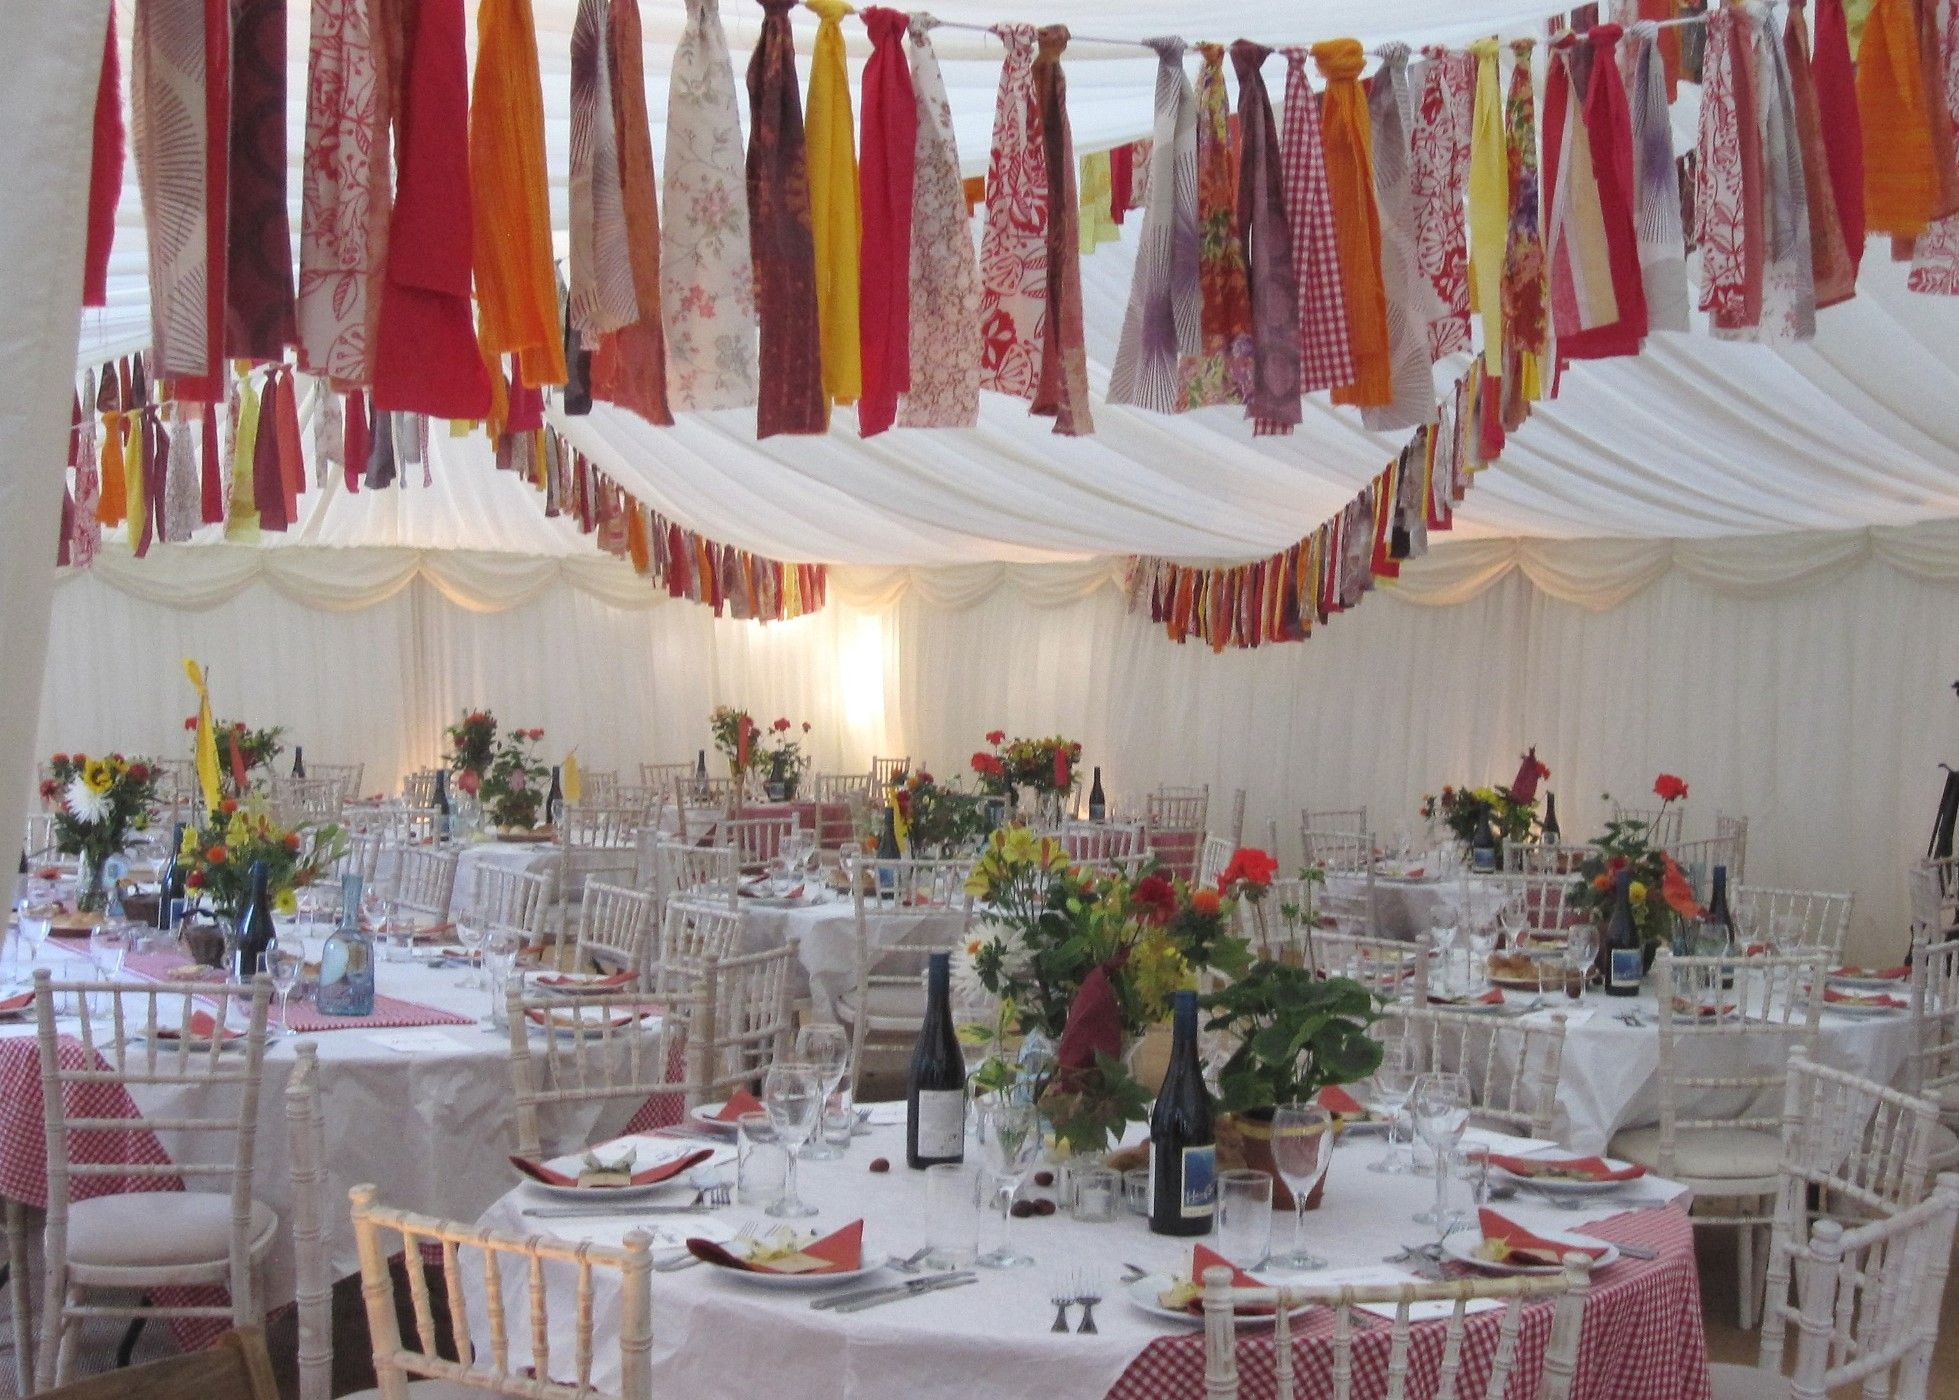 Interior view of marquee with nepalese-inspired prayer flag bunting